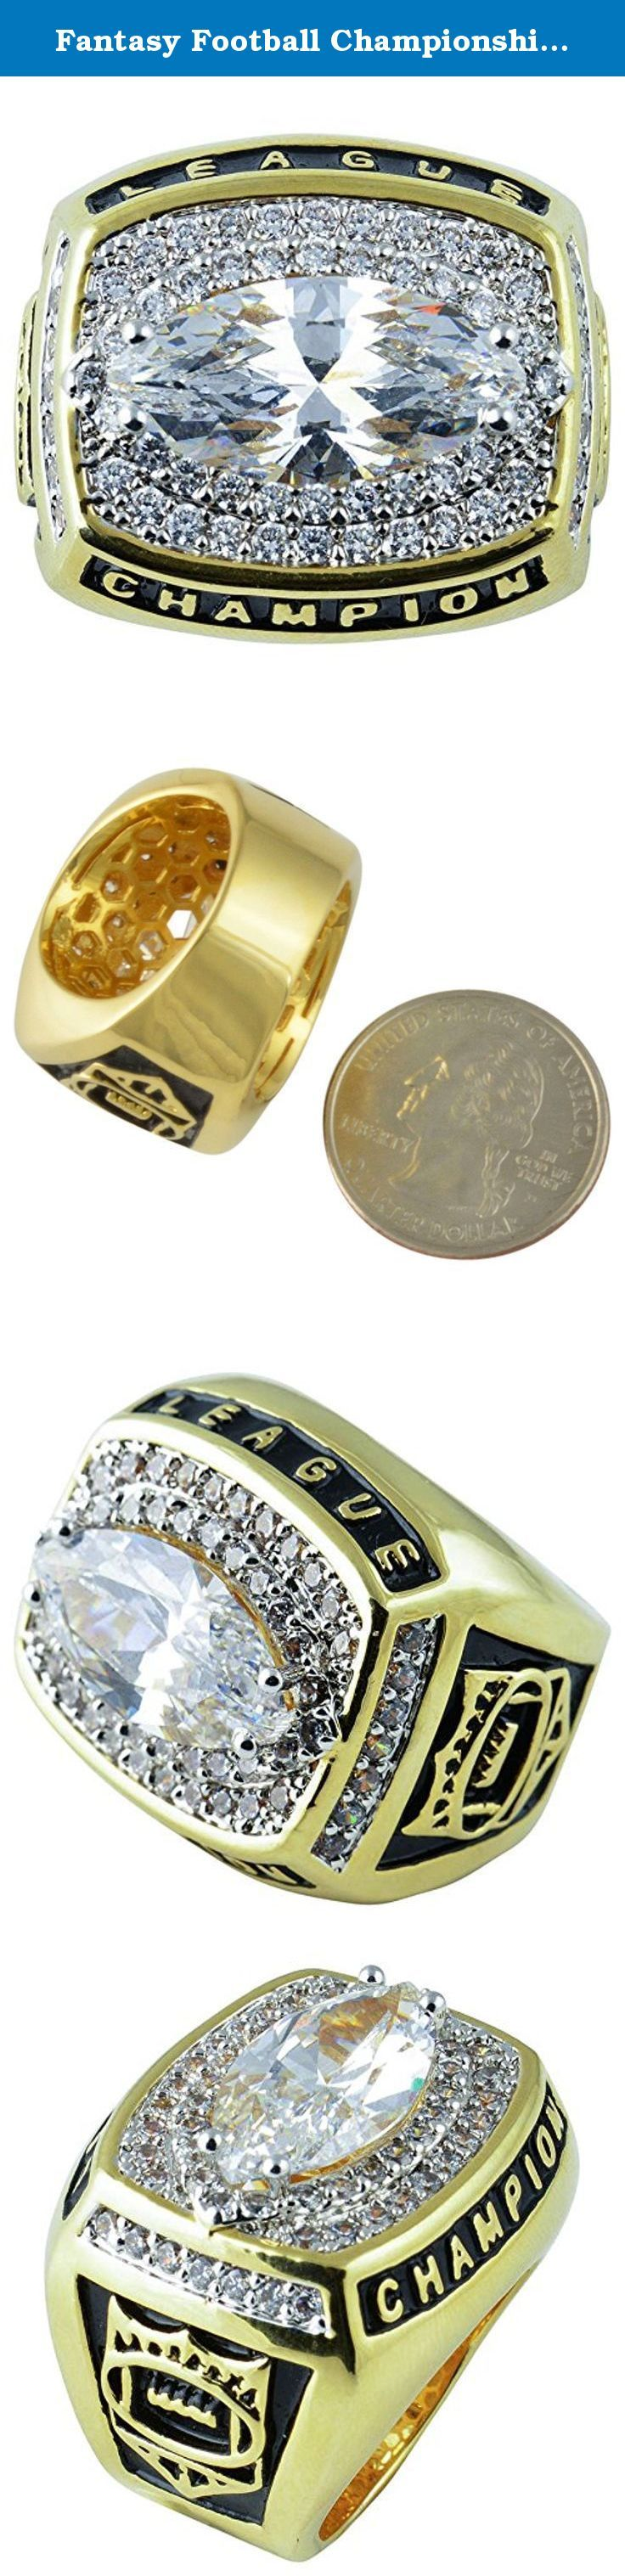 "Fantasy Football Championship Trophy Ring Gold Plate & CZ Size 11. Measurements are 1"" from the widest points."